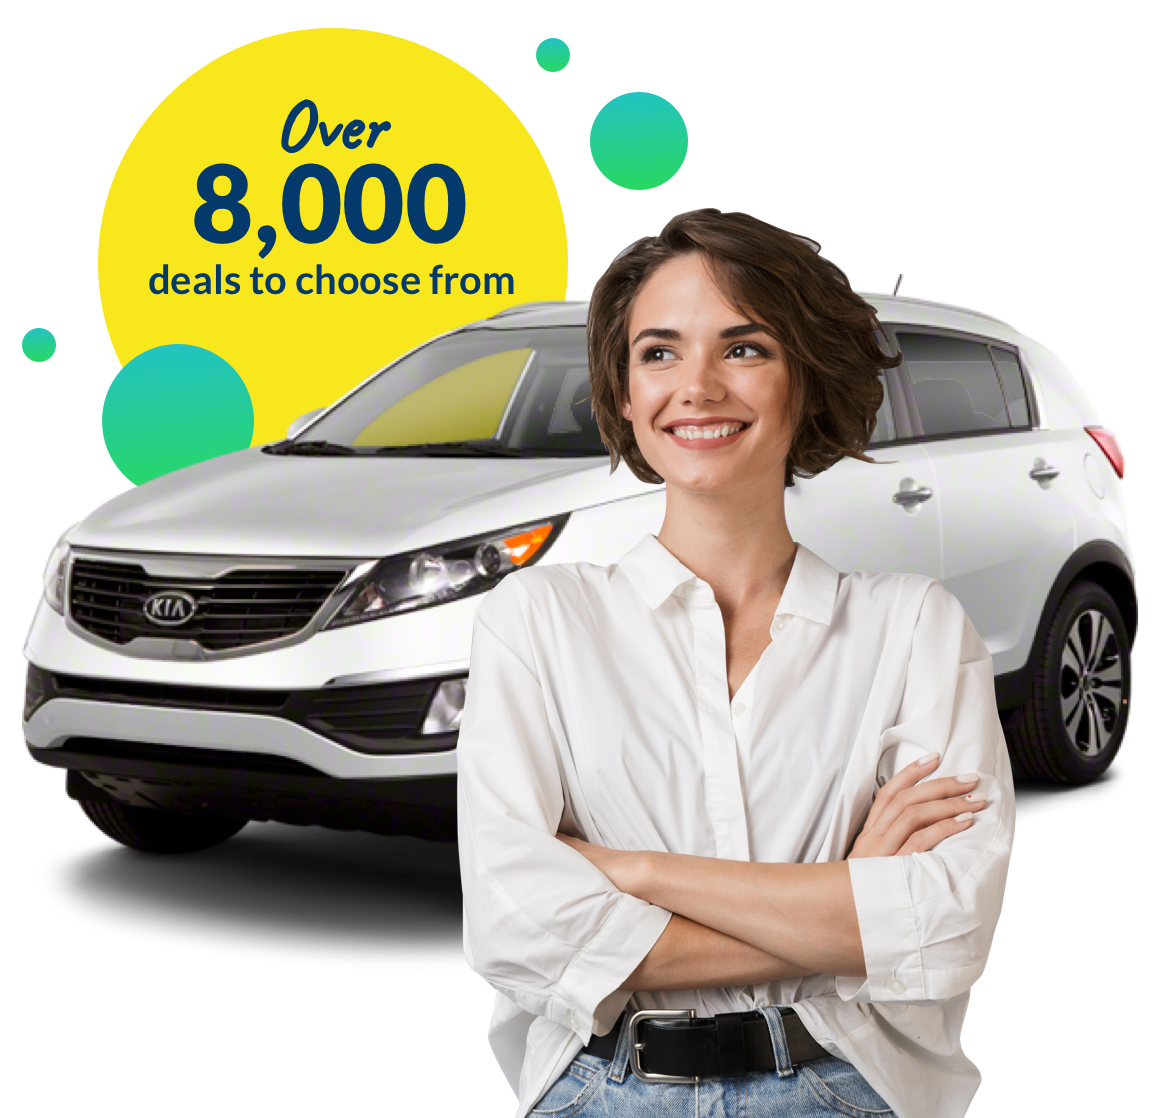 Over 8,000 deals to choose from